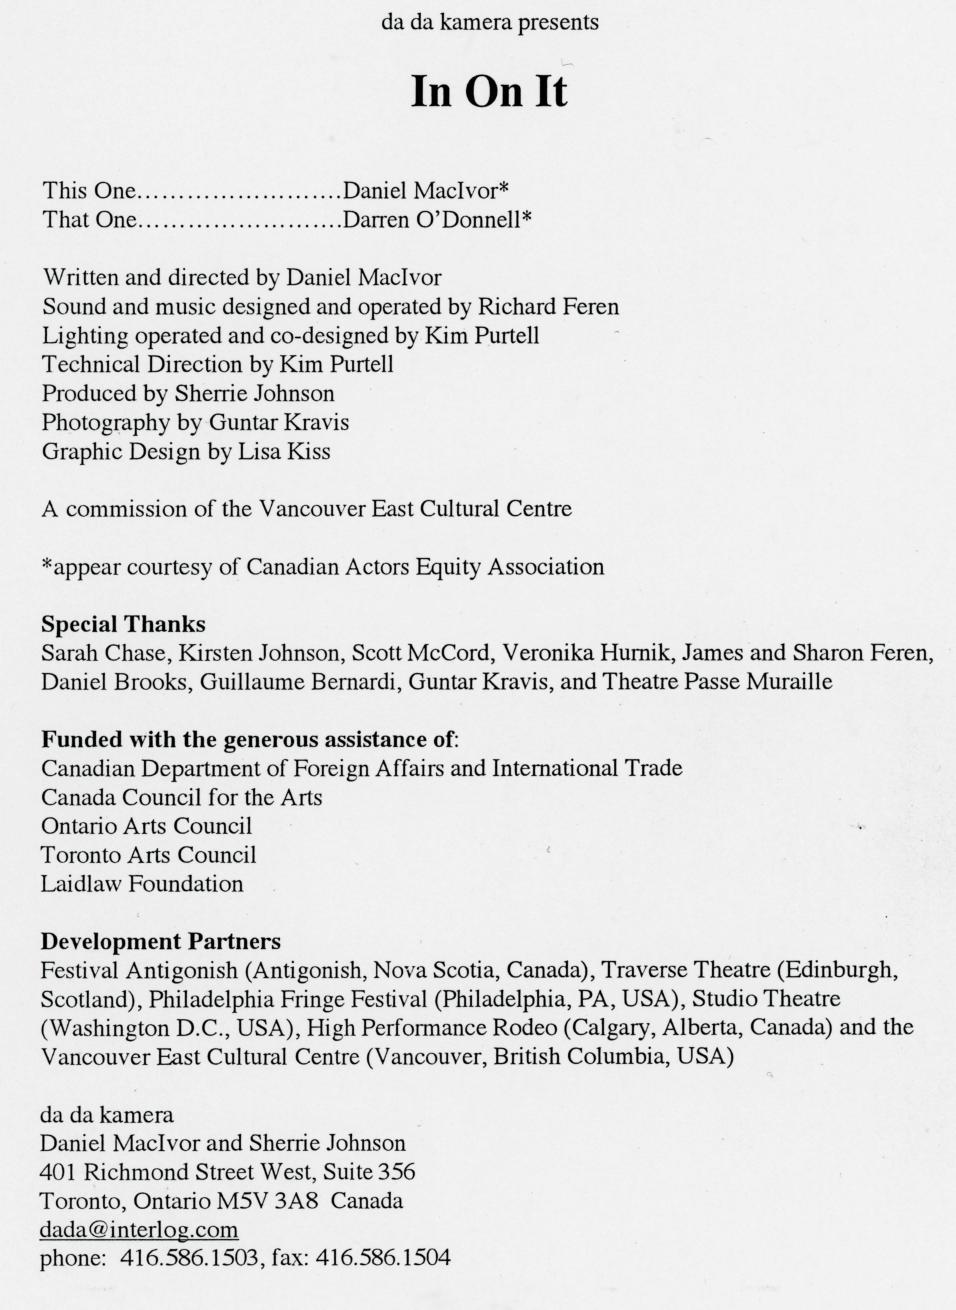 IN ON IT (2000) - Production Information (Reproduction)-page-001.jpg